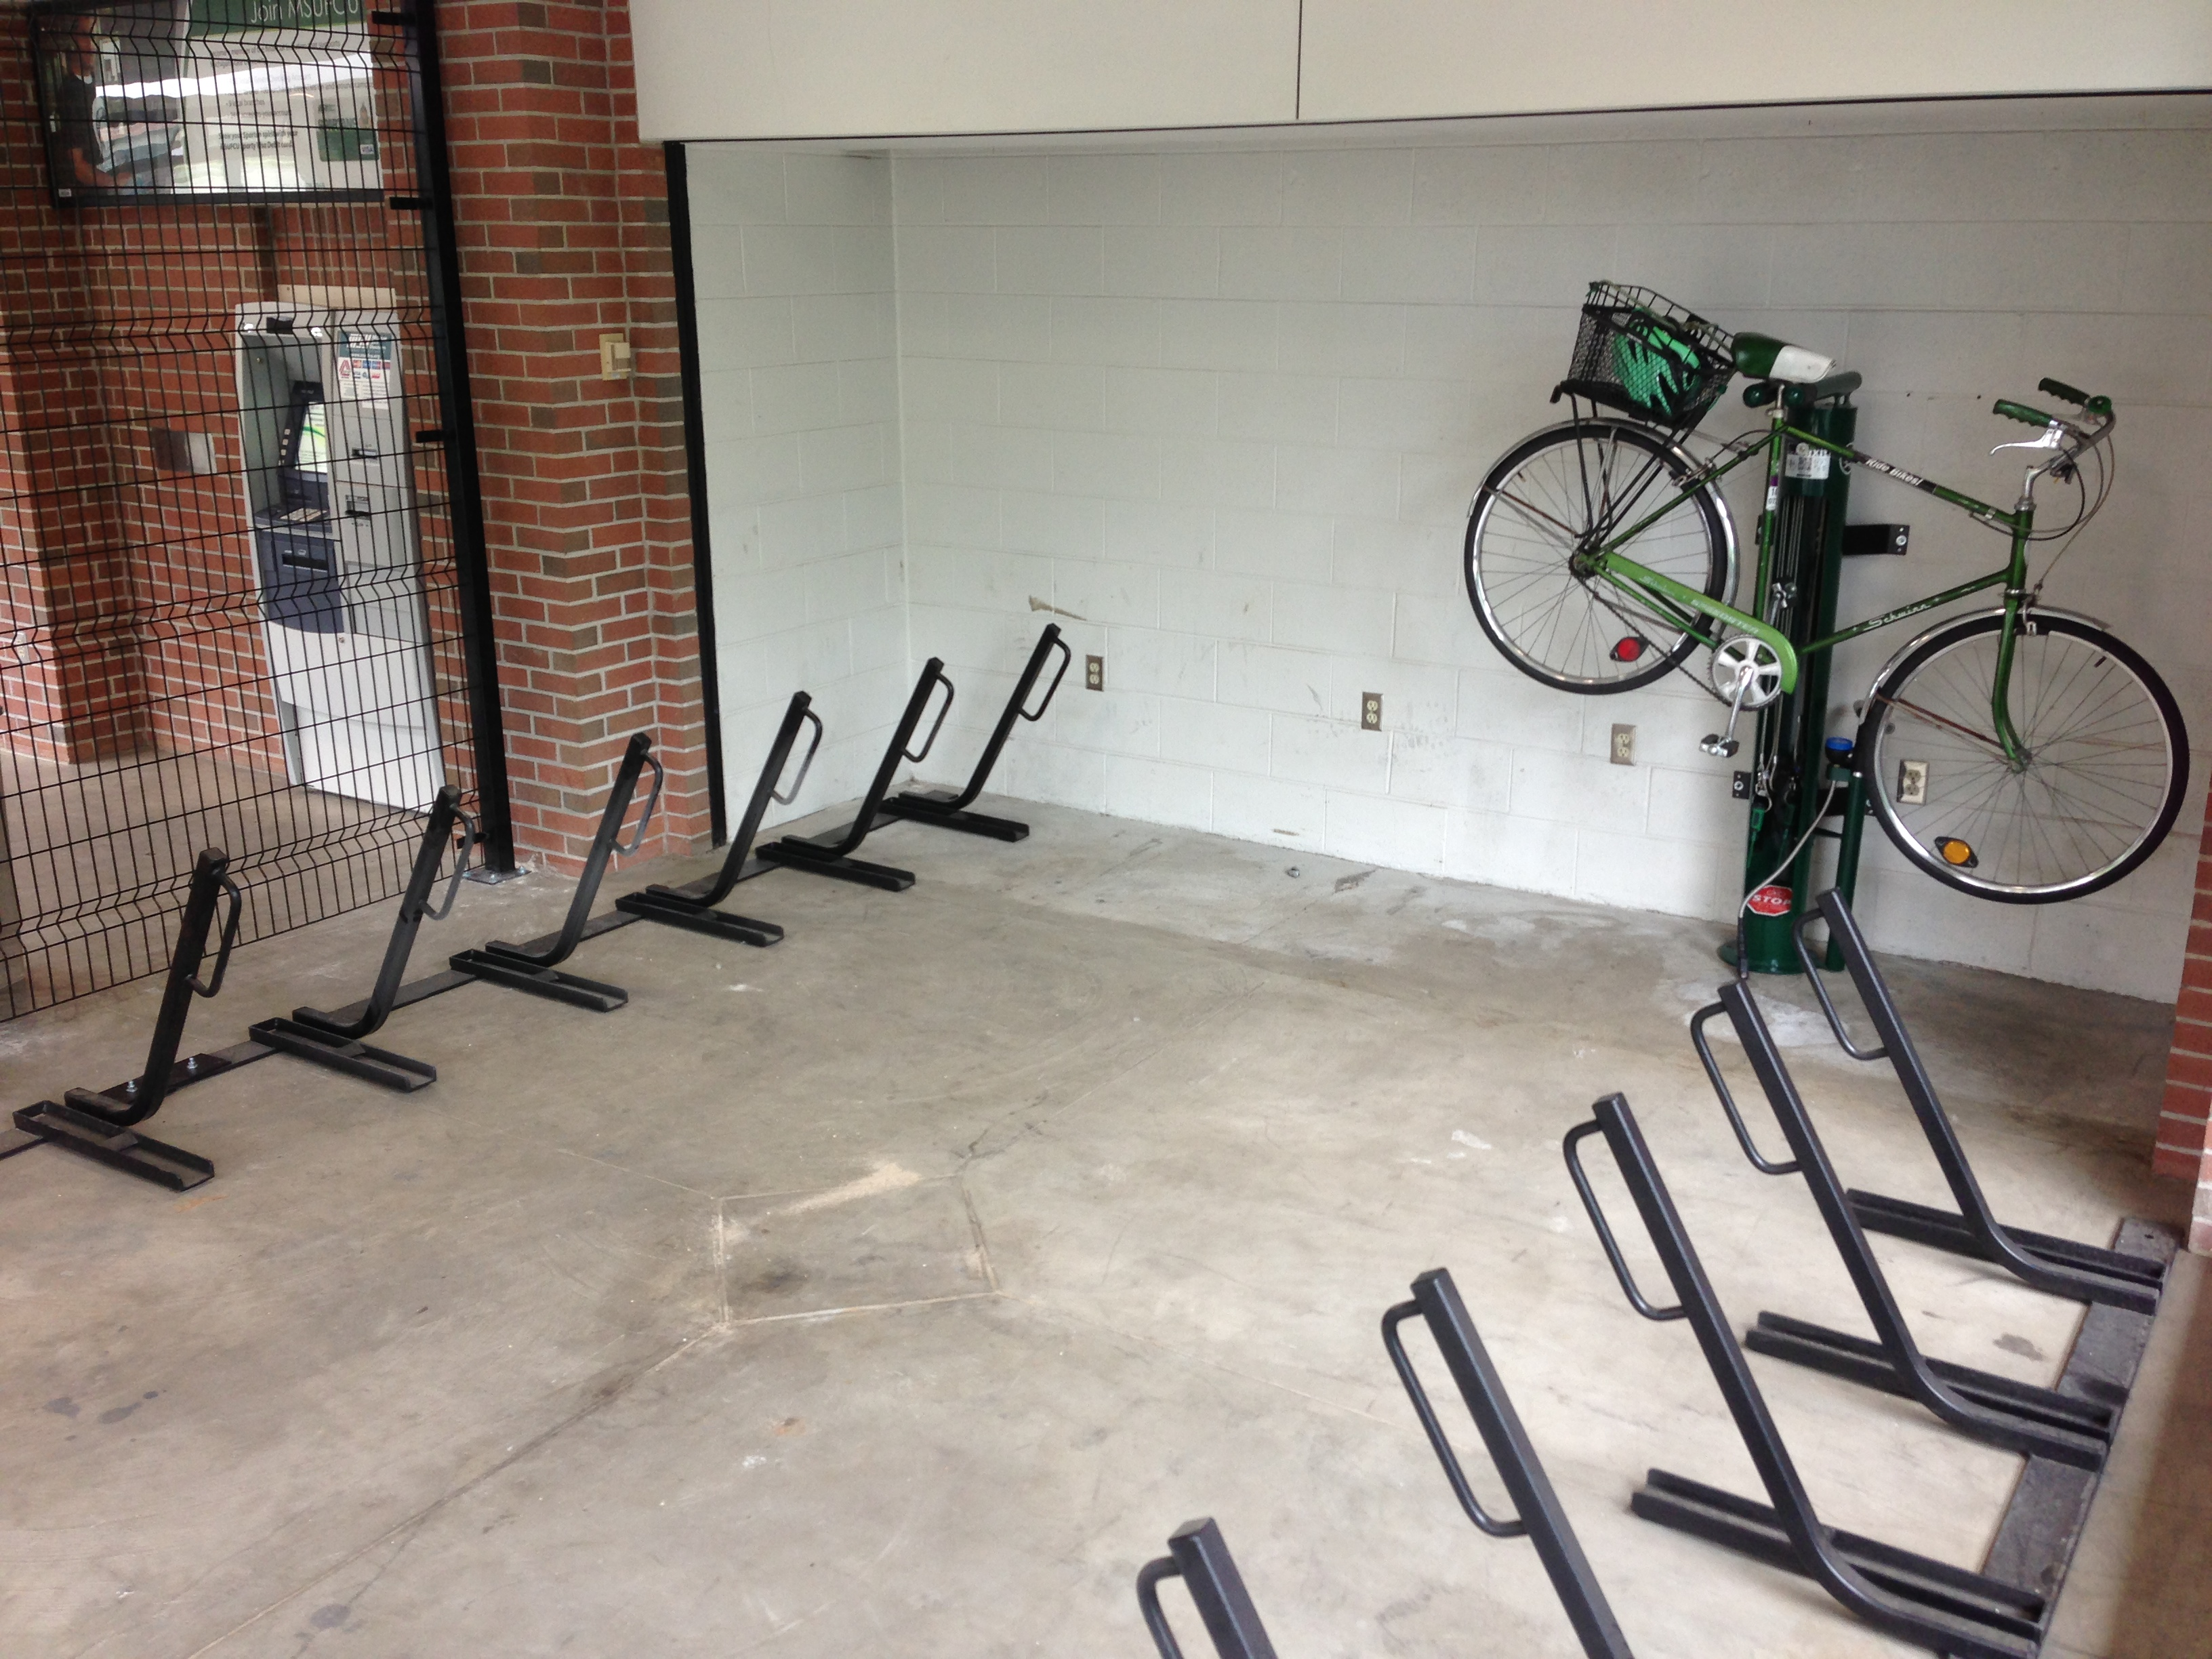 Parking Garage Bike Rack Secure Bike Parking Facilities On Campus Msu Bikes Blog